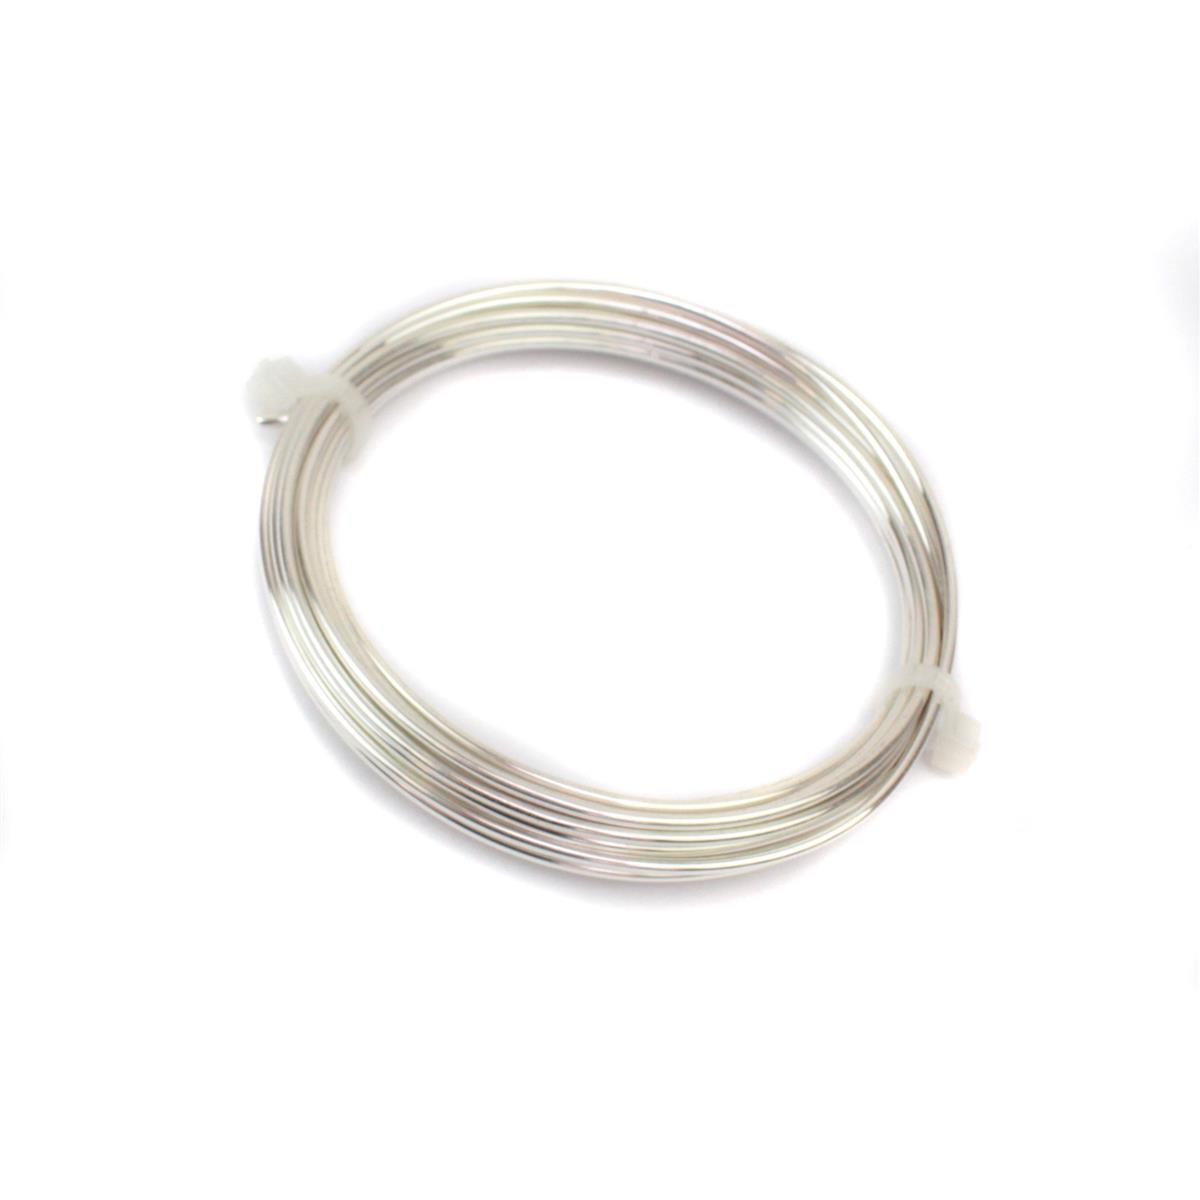 Artistic Wire, 14 Gauge (1 6 mm), Silver Plated, Tarnish